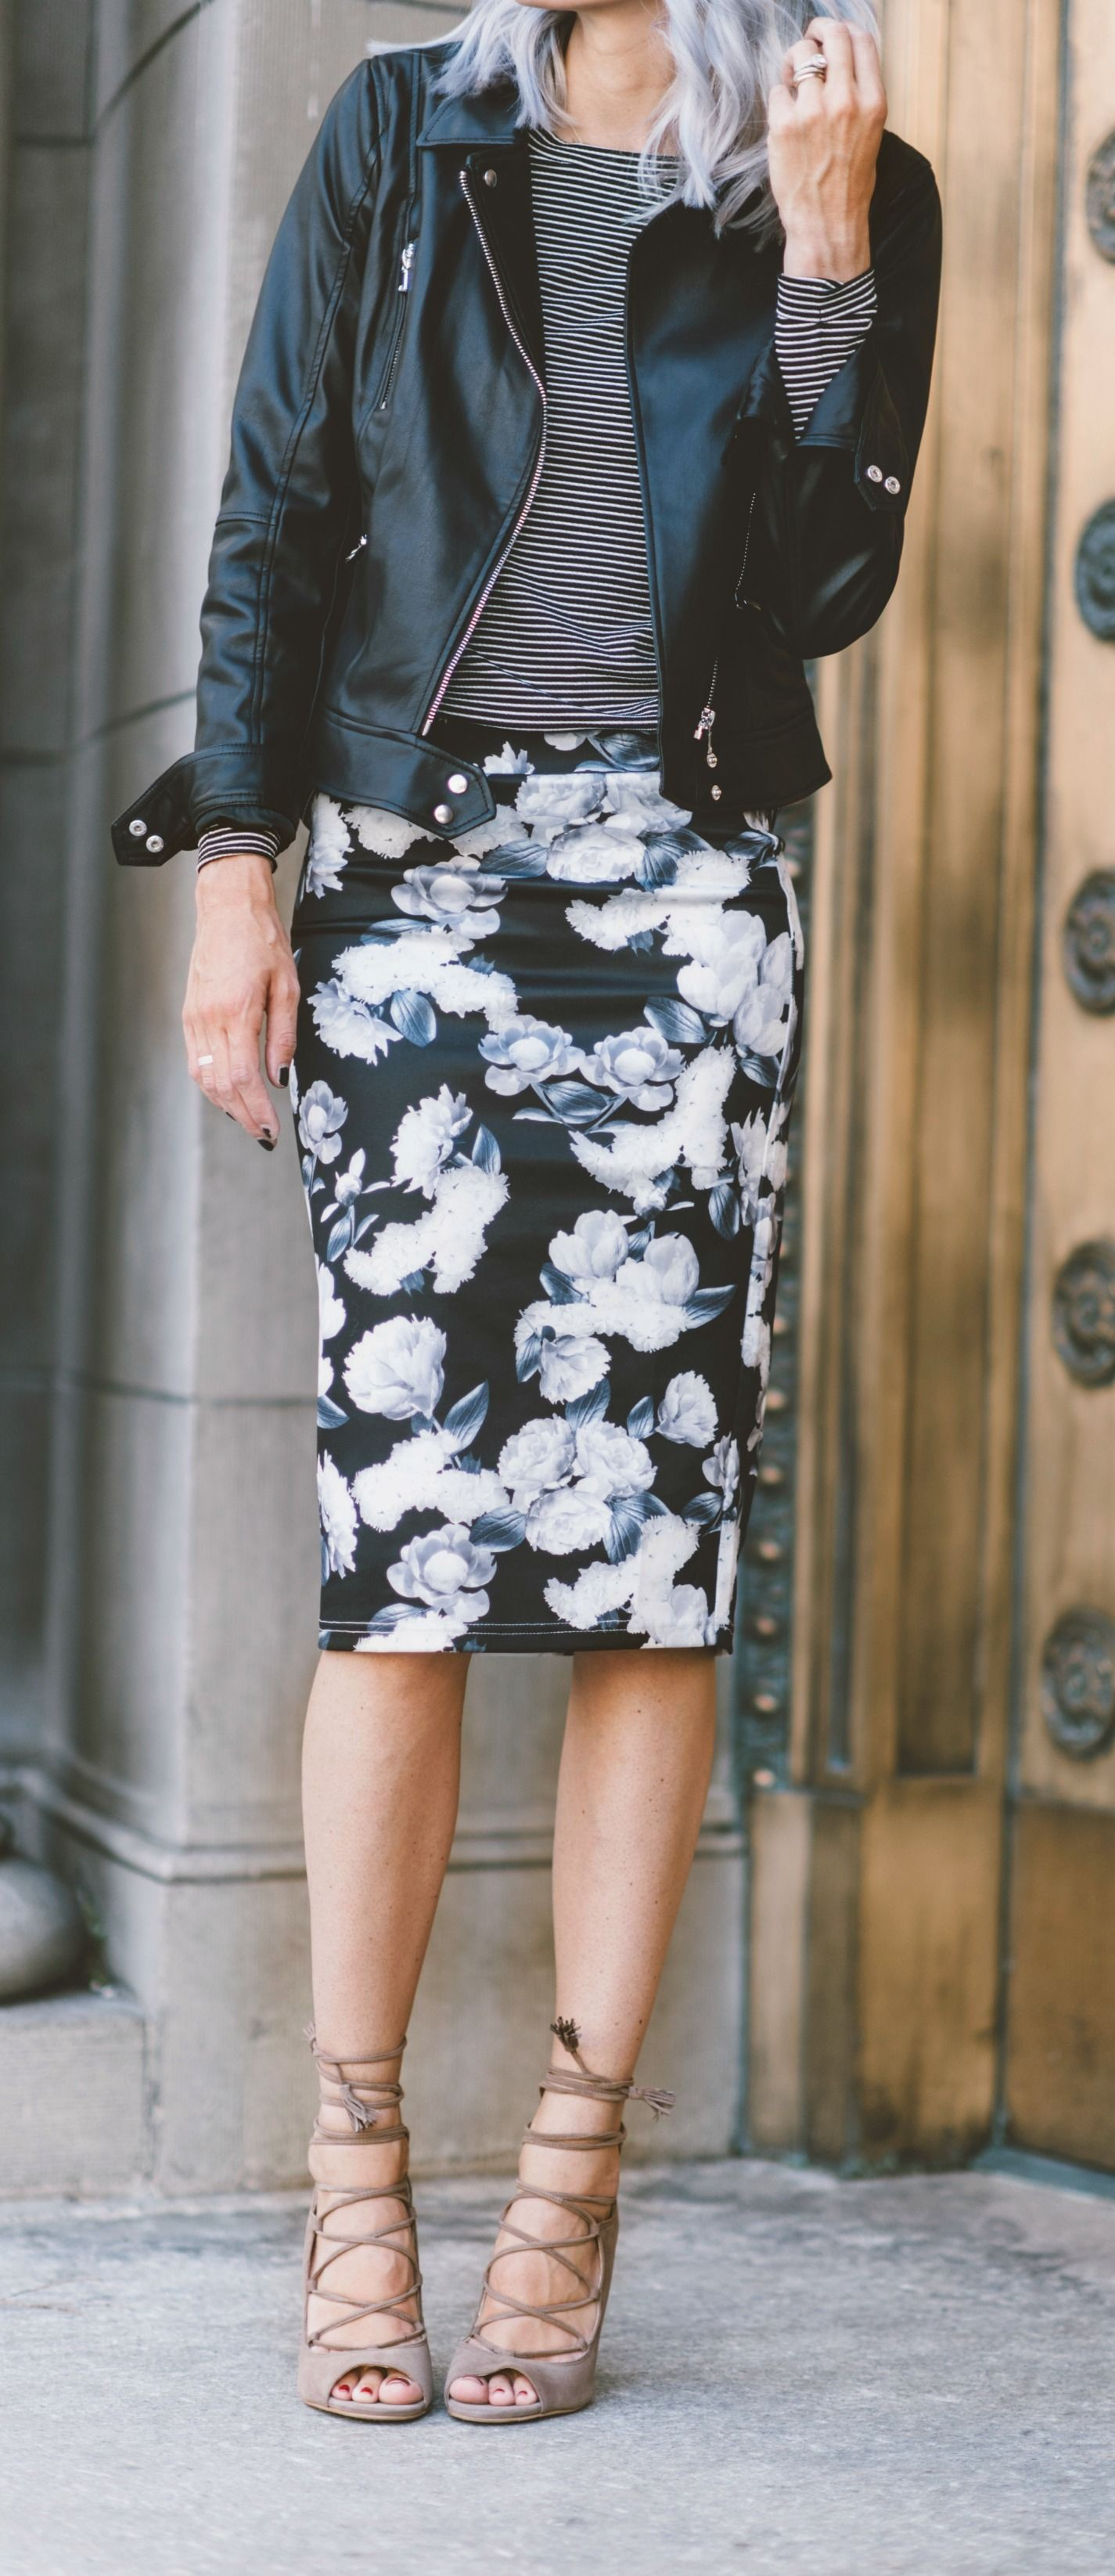 Floral pencil skirt ideas, street fashion, floral design, pencil skirt, casual wear